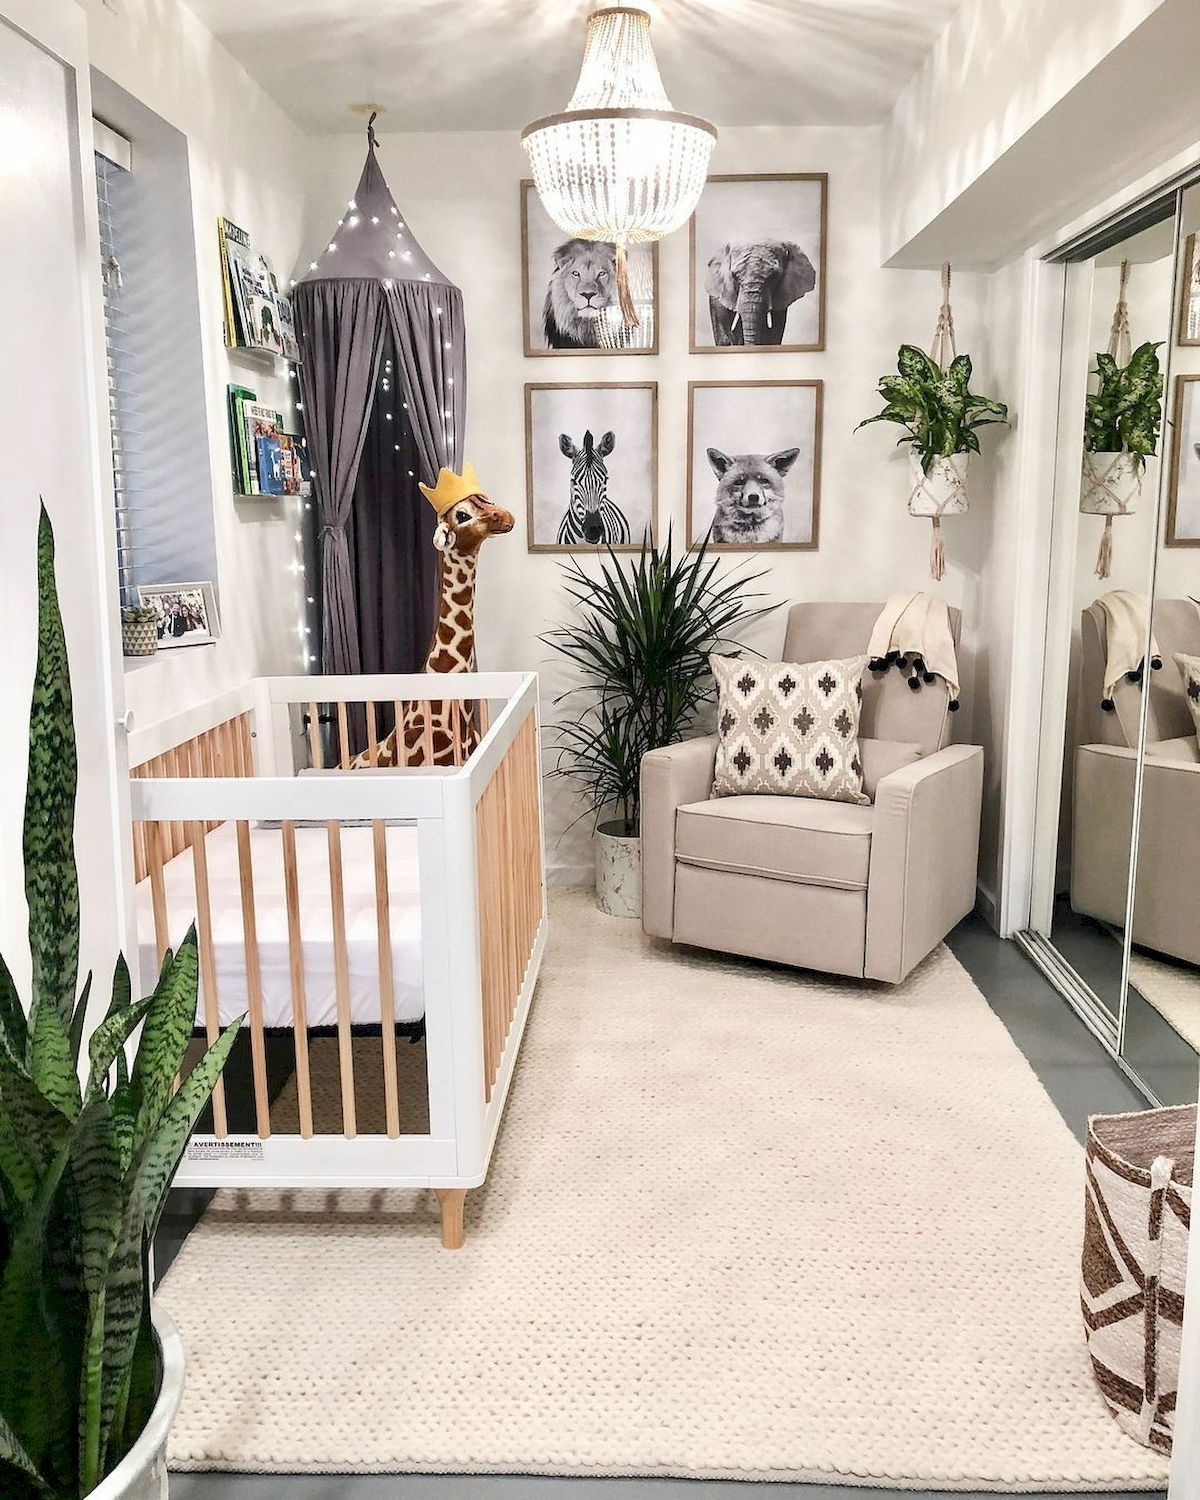 41 modern baby room idea for baby boy look luxury with